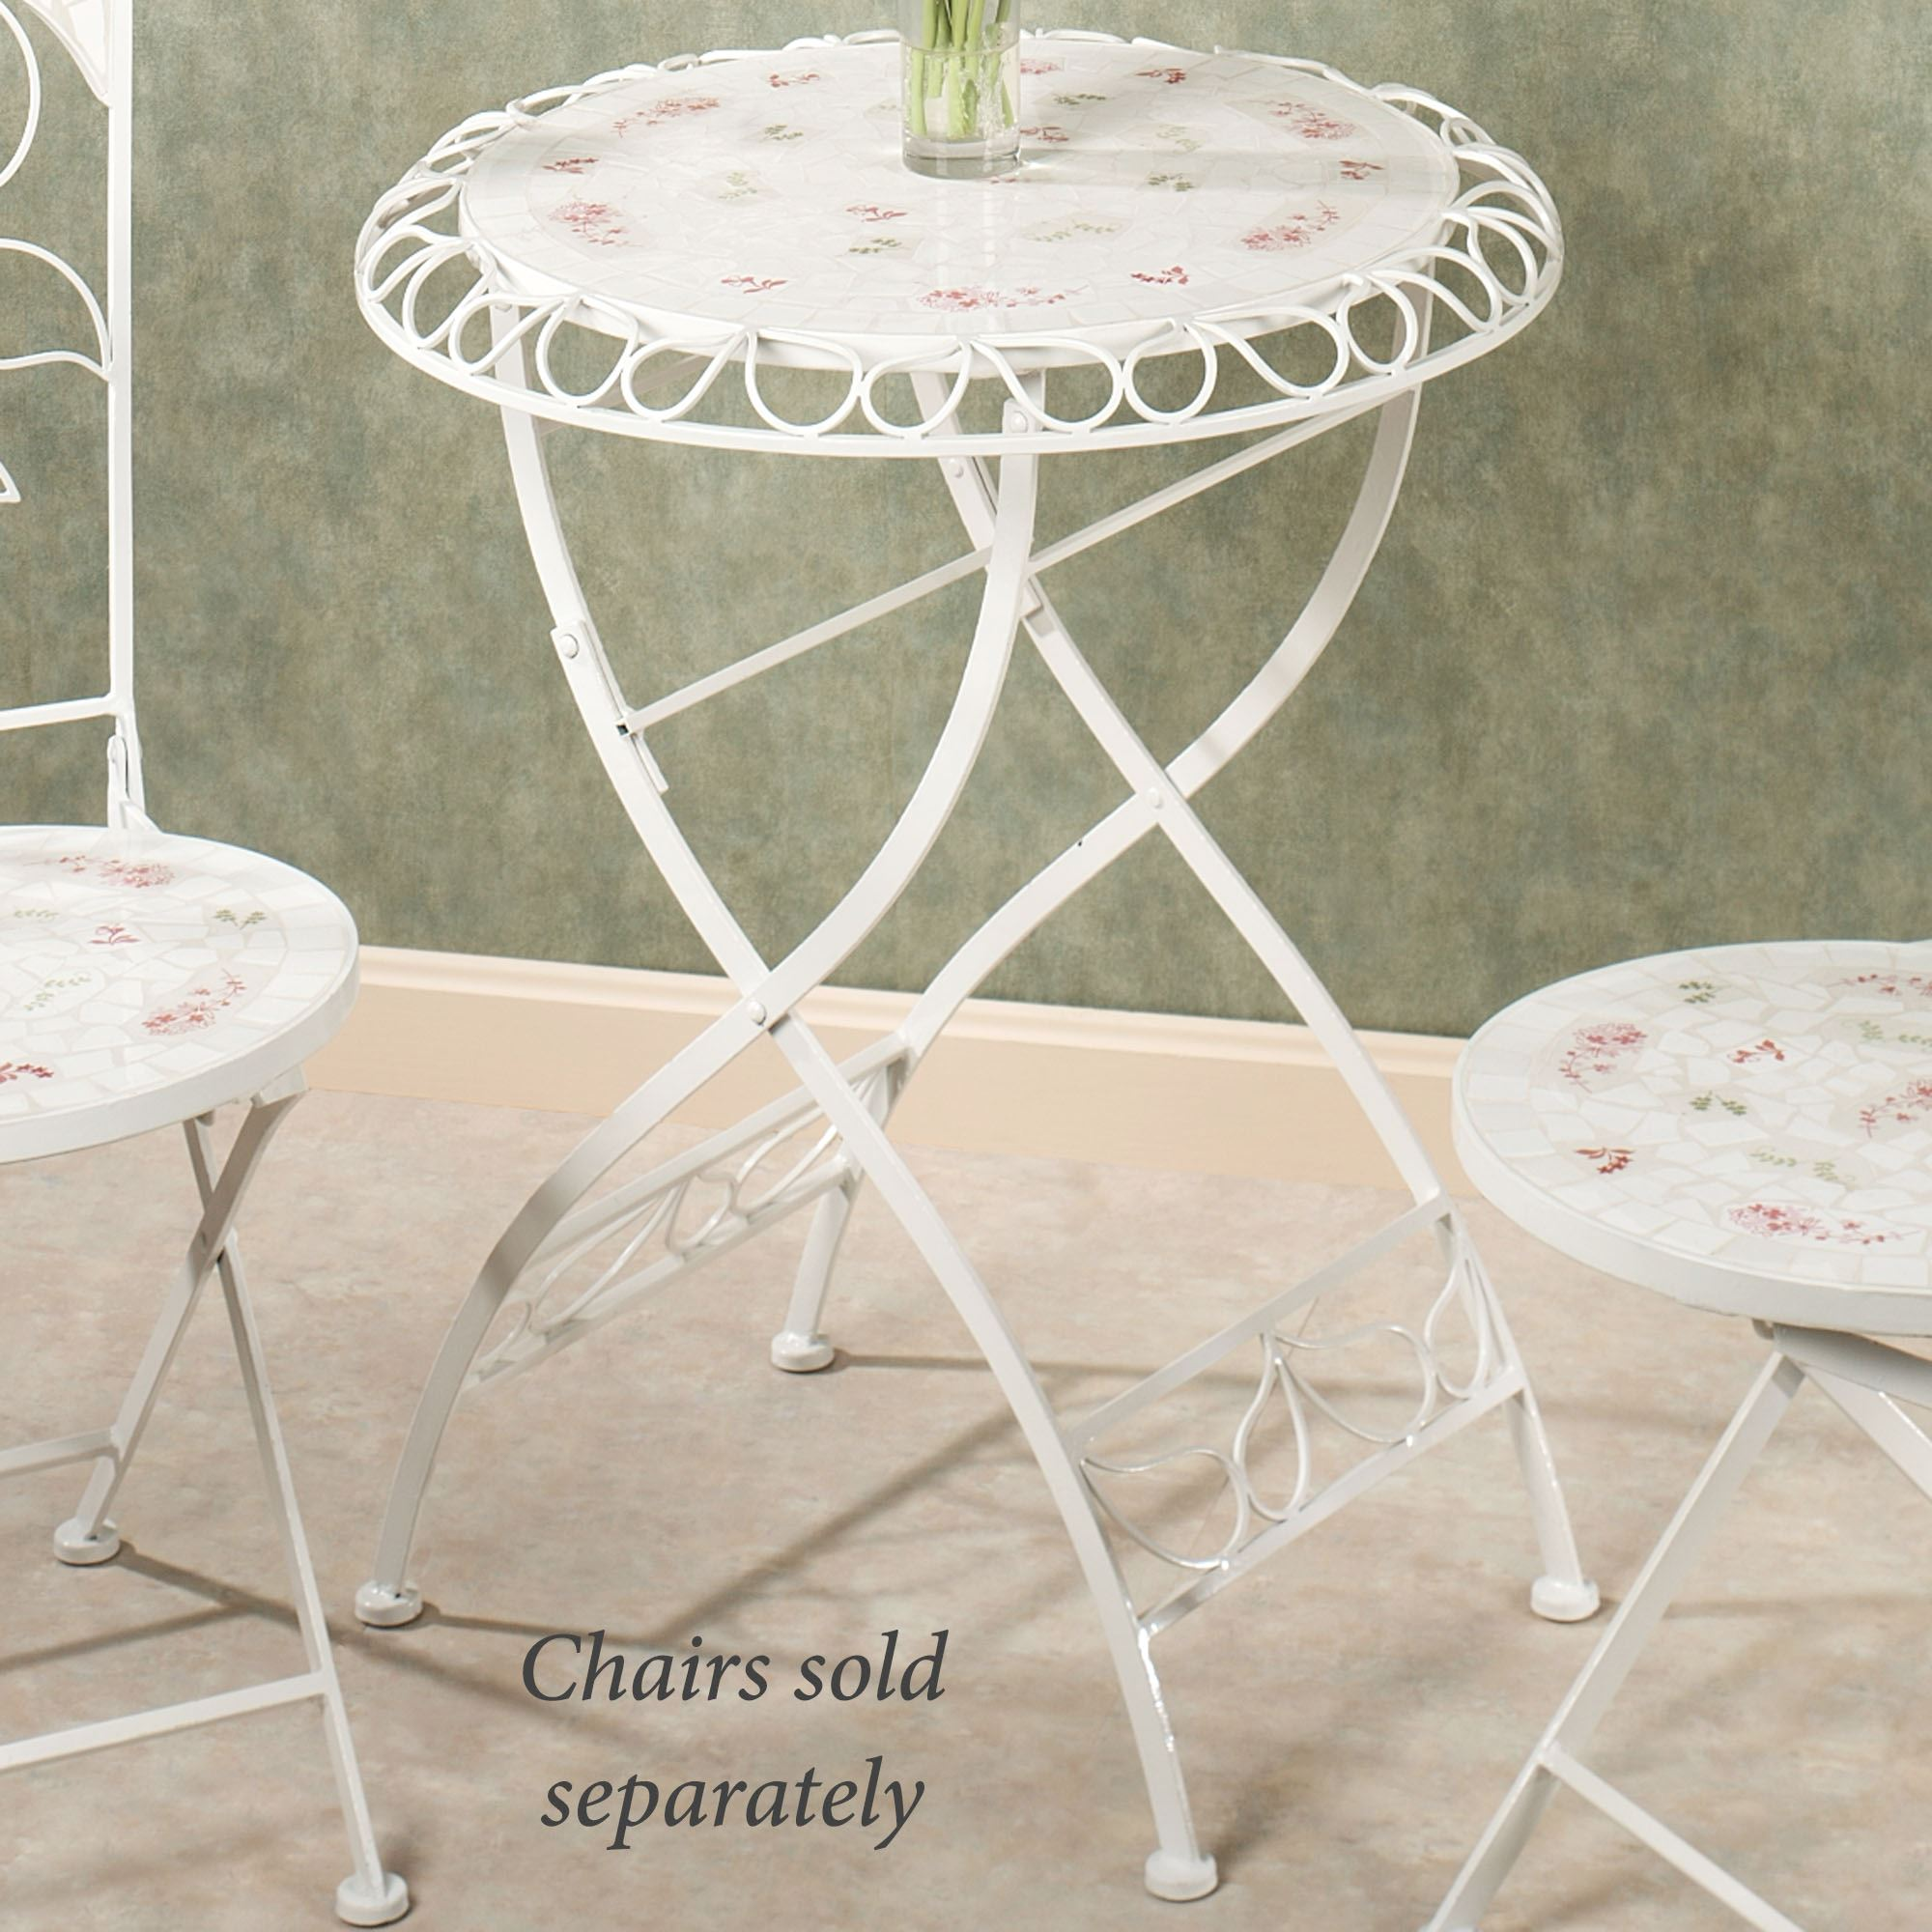 Aails Garden Bistro Table Soft White